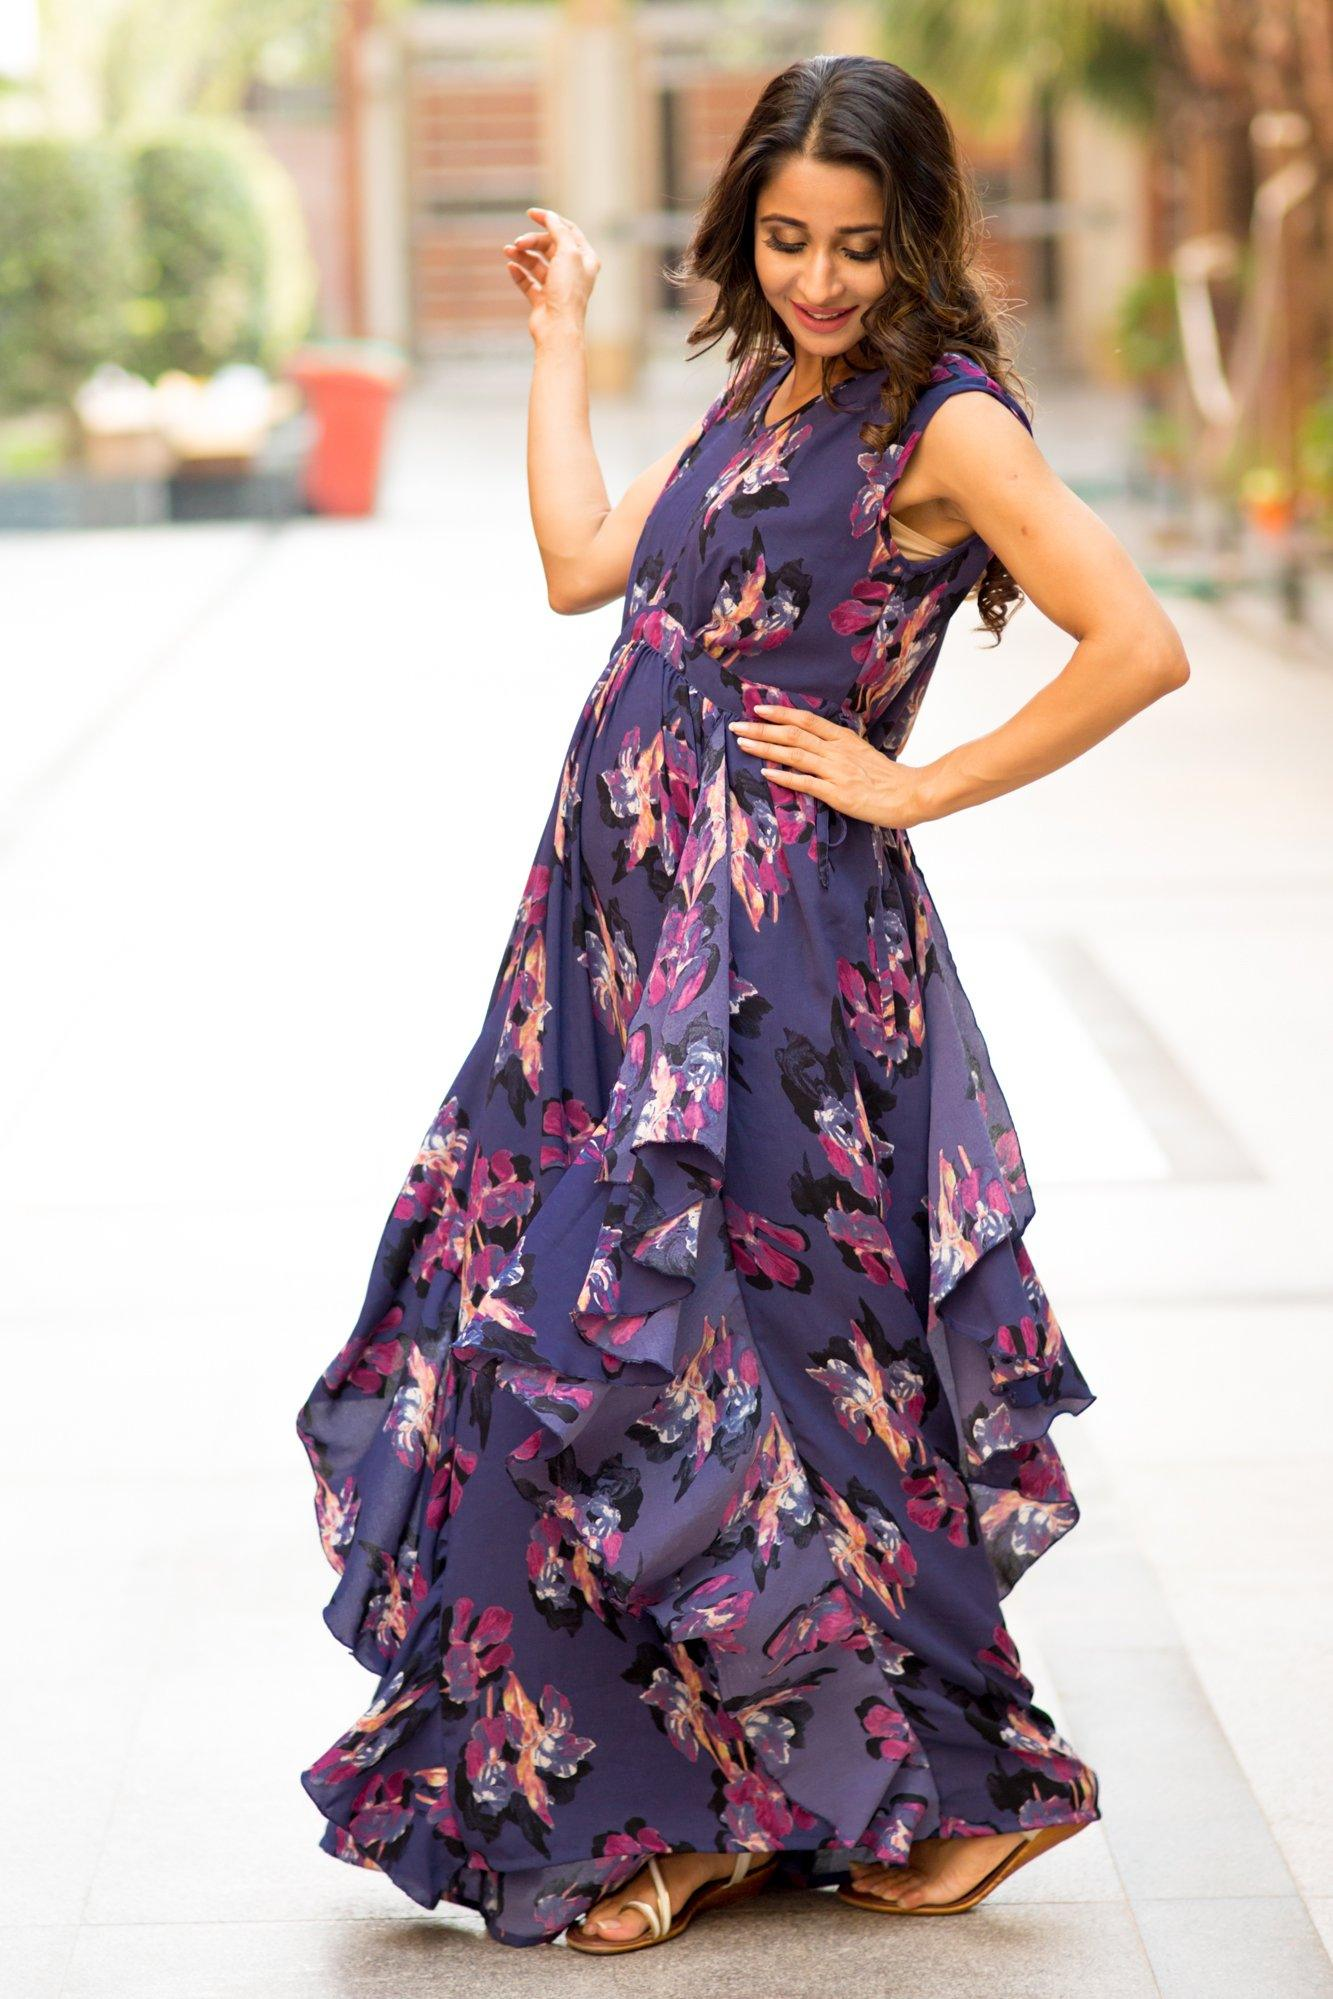 Buy online momzjoy maternity dresses pregnancy wear nursing clothes luxe violet floral moss maternity dress ombrellifo Images